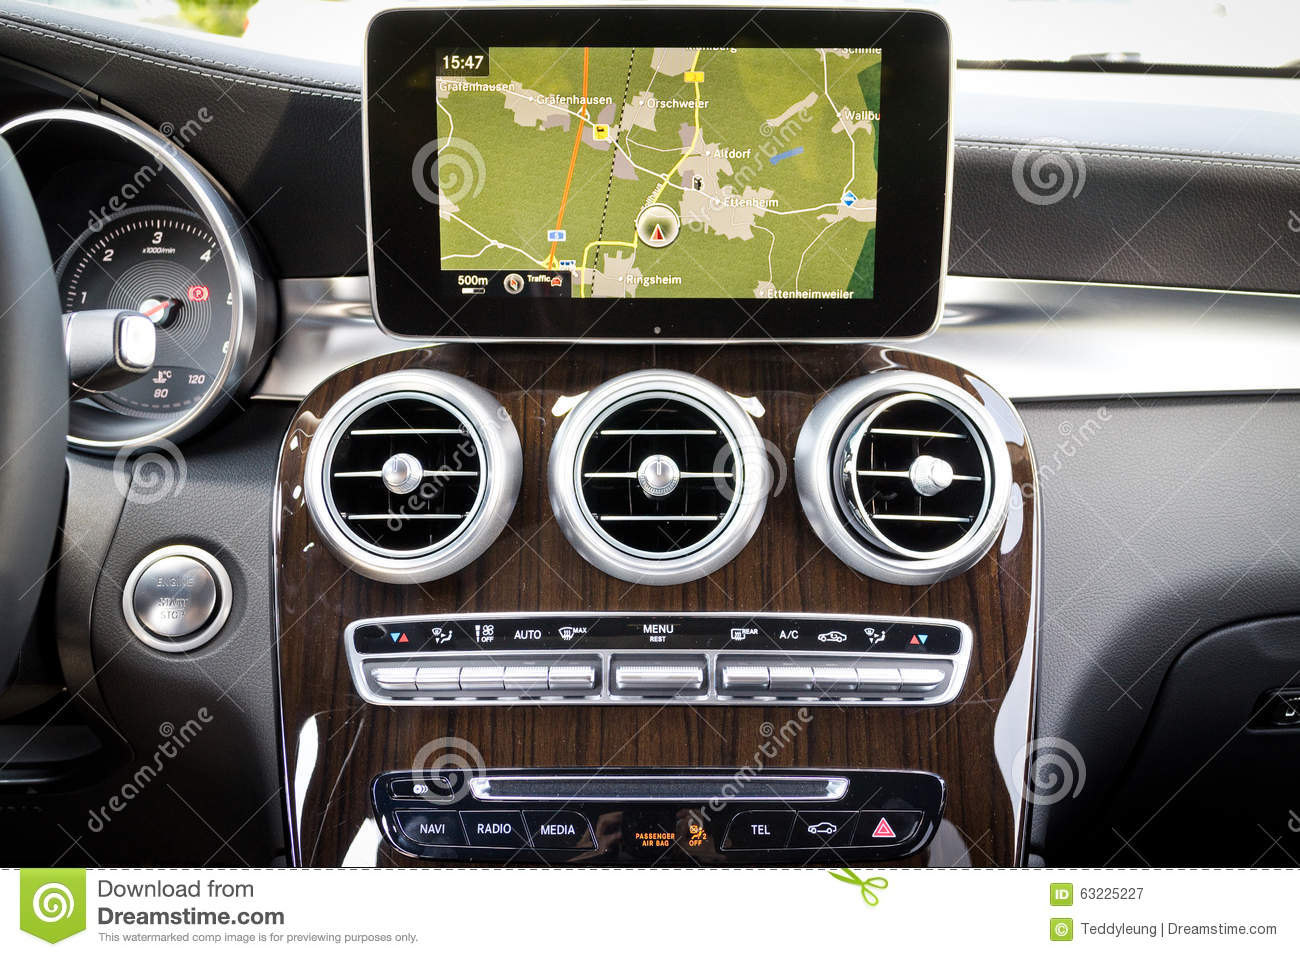 mercedes benz all new glc suv 2015 gps system editorial